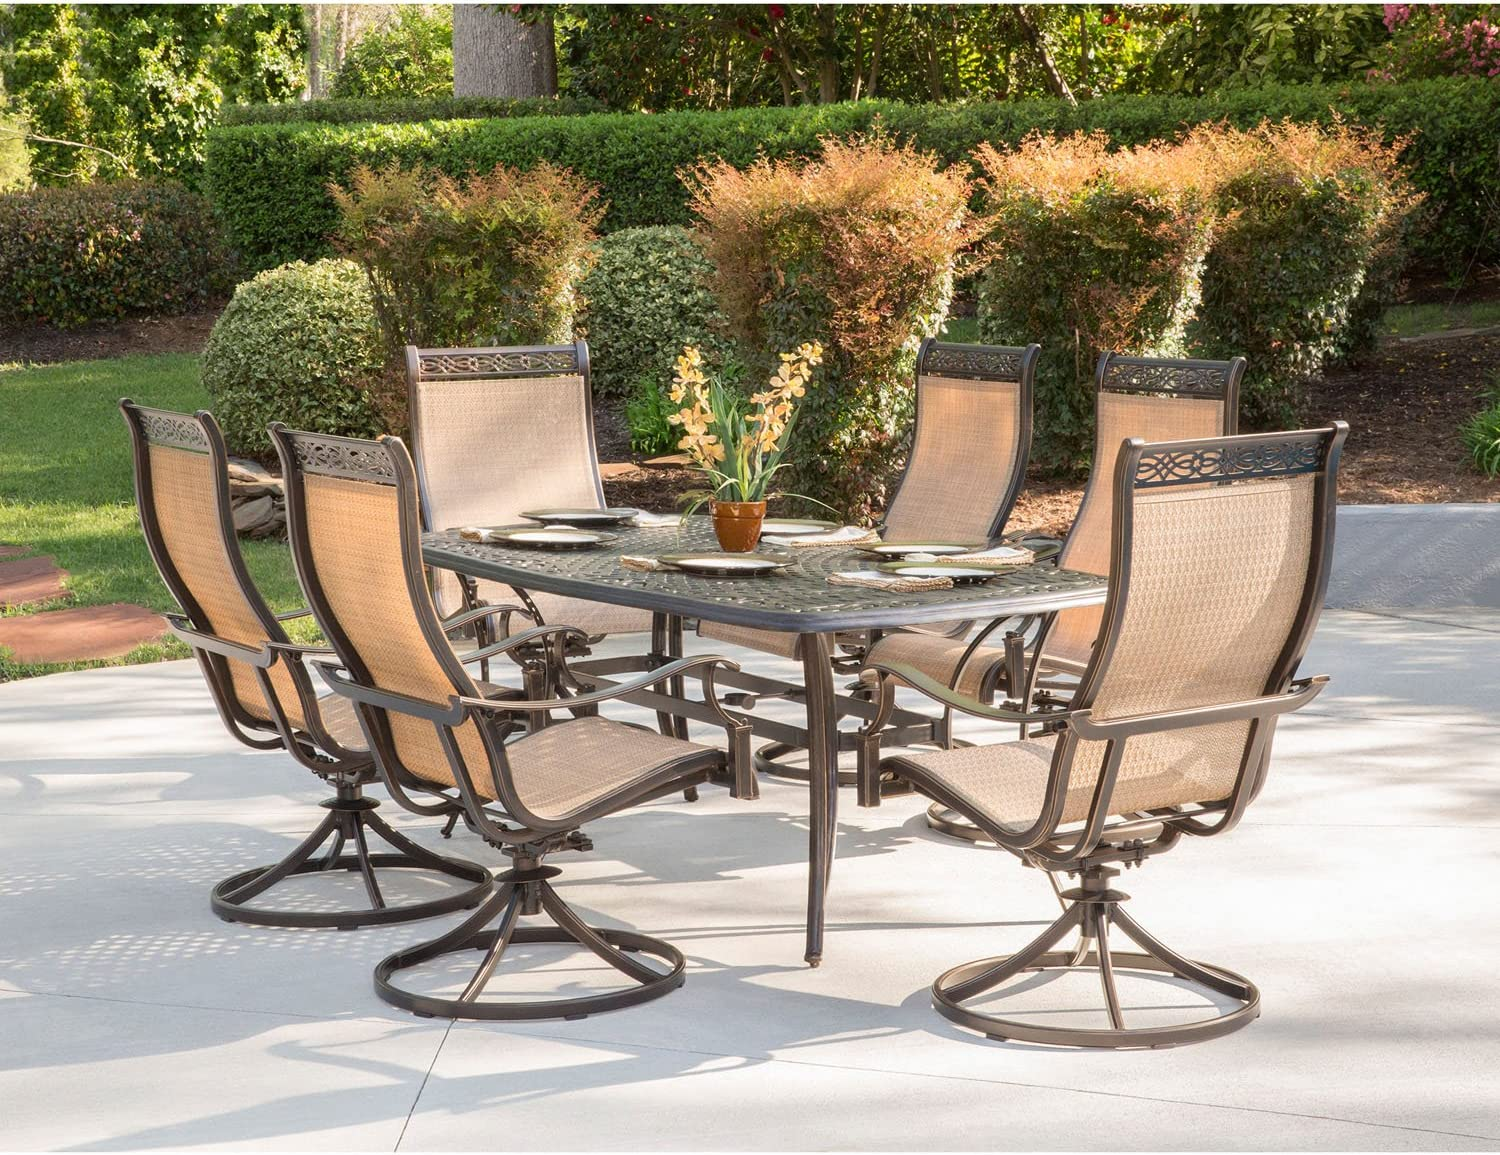 Amazon Com Hanover Mandn7pcsw 6 Chairs And Rectangle Cast Aluminum Table Brushed Bronz Manor 7 Piece Outdoor Patio Dining Set 6 Sling Swivel Rocker Tan Garden Outdoor